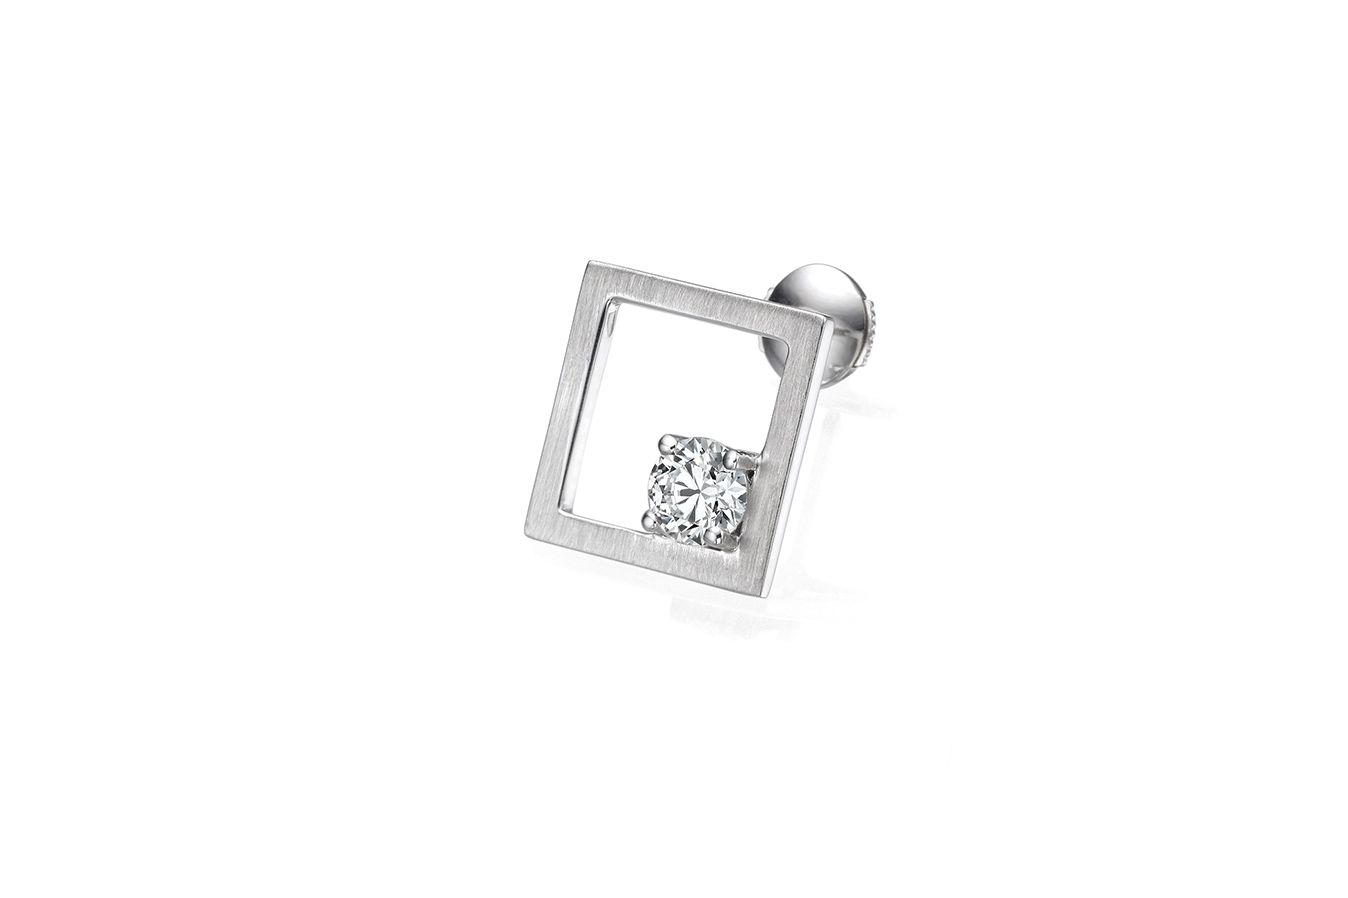 RATIO M+ EARRING 18K WHITE GOLD 0.50 CT DIAMOND